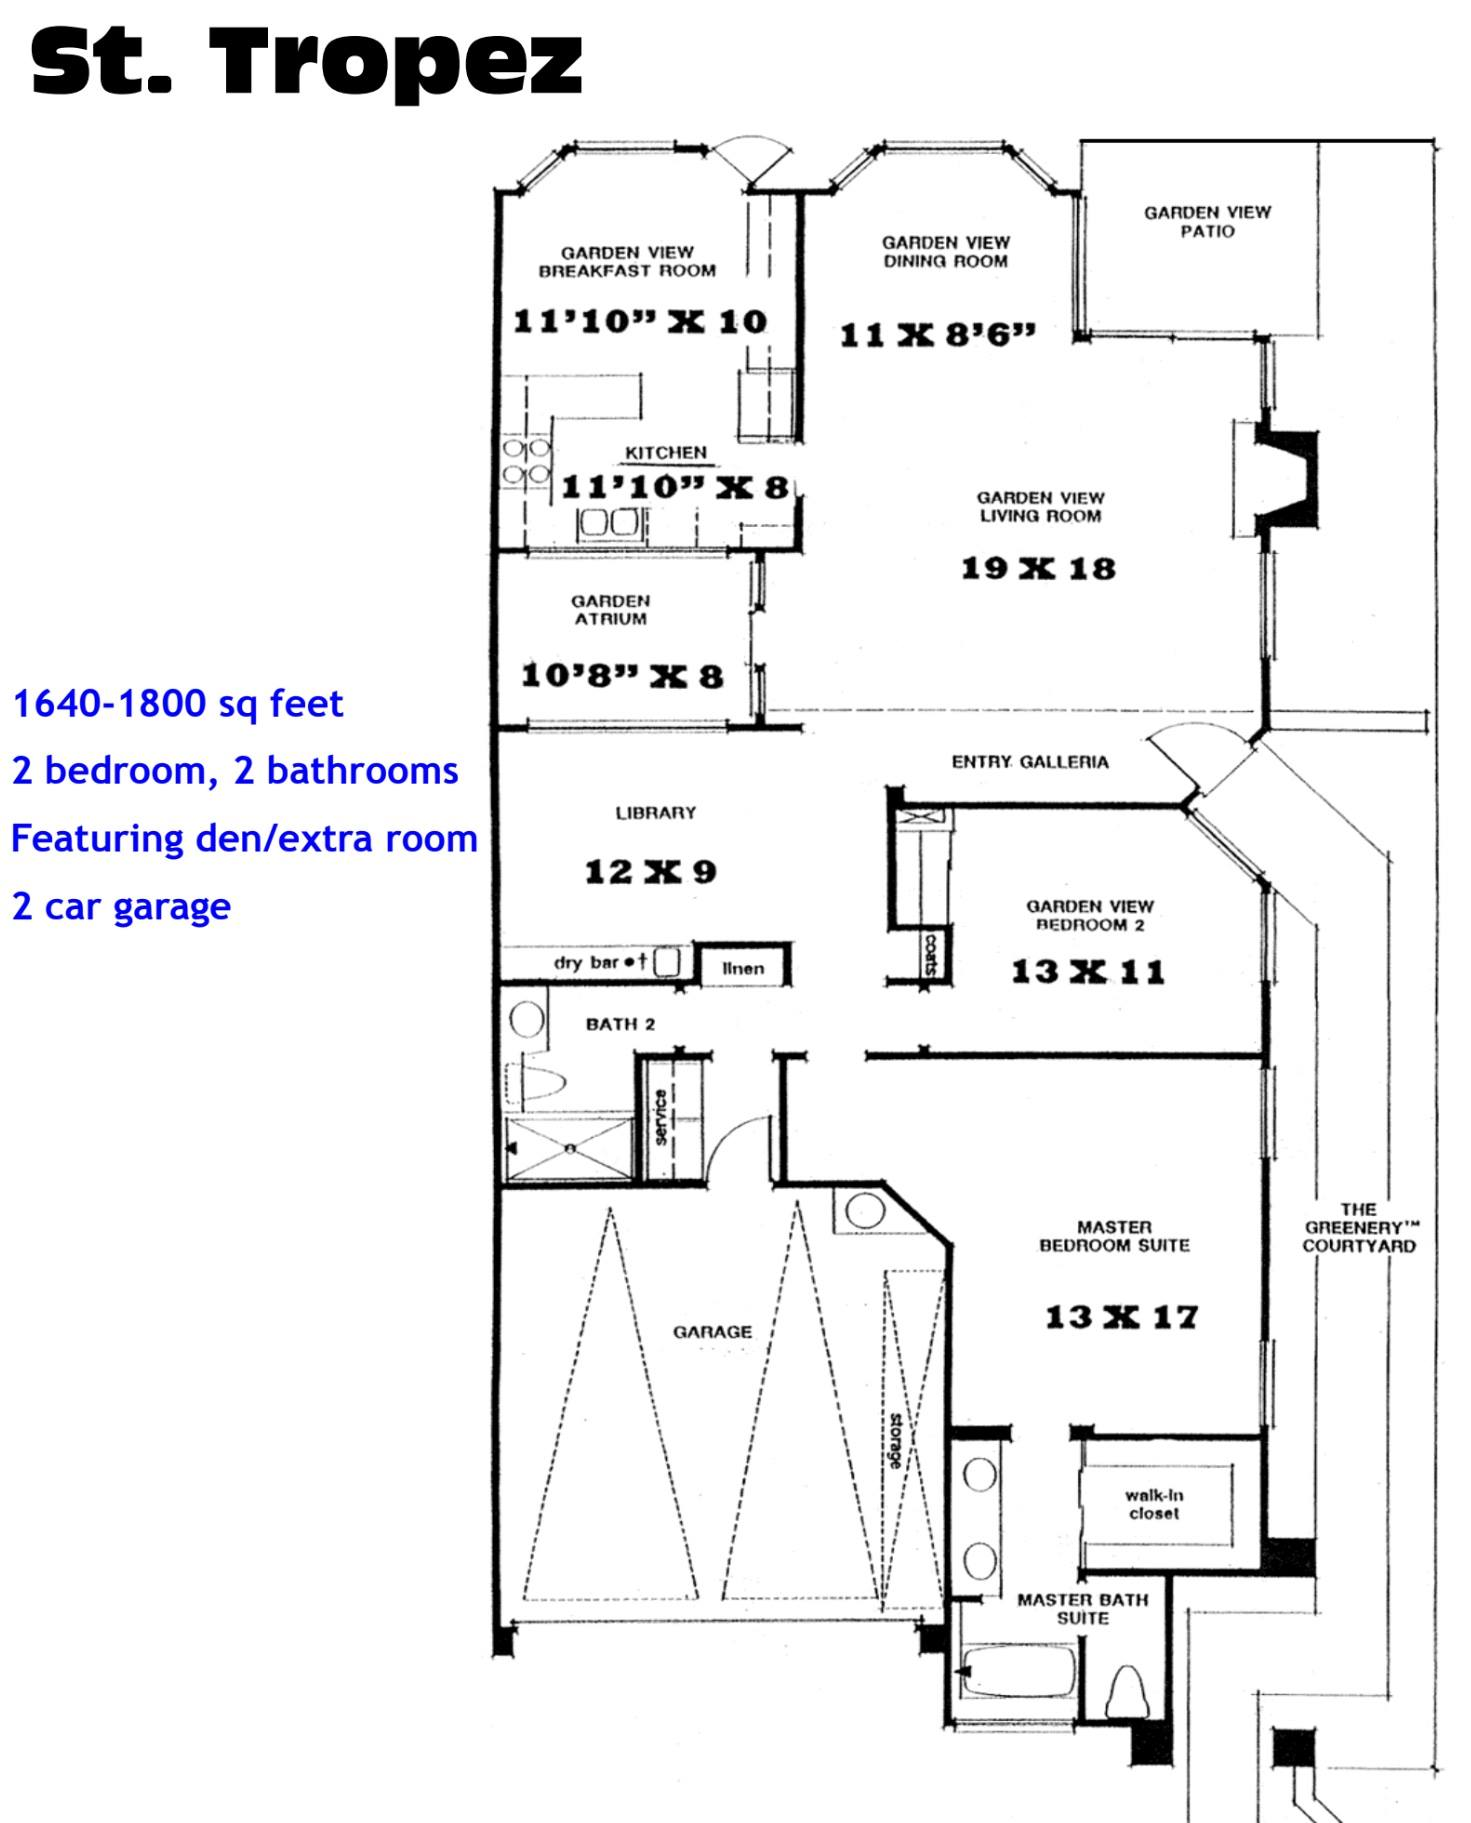 Ocean Hills Country Club St Tropez Floor Plans Ocean Hills Model